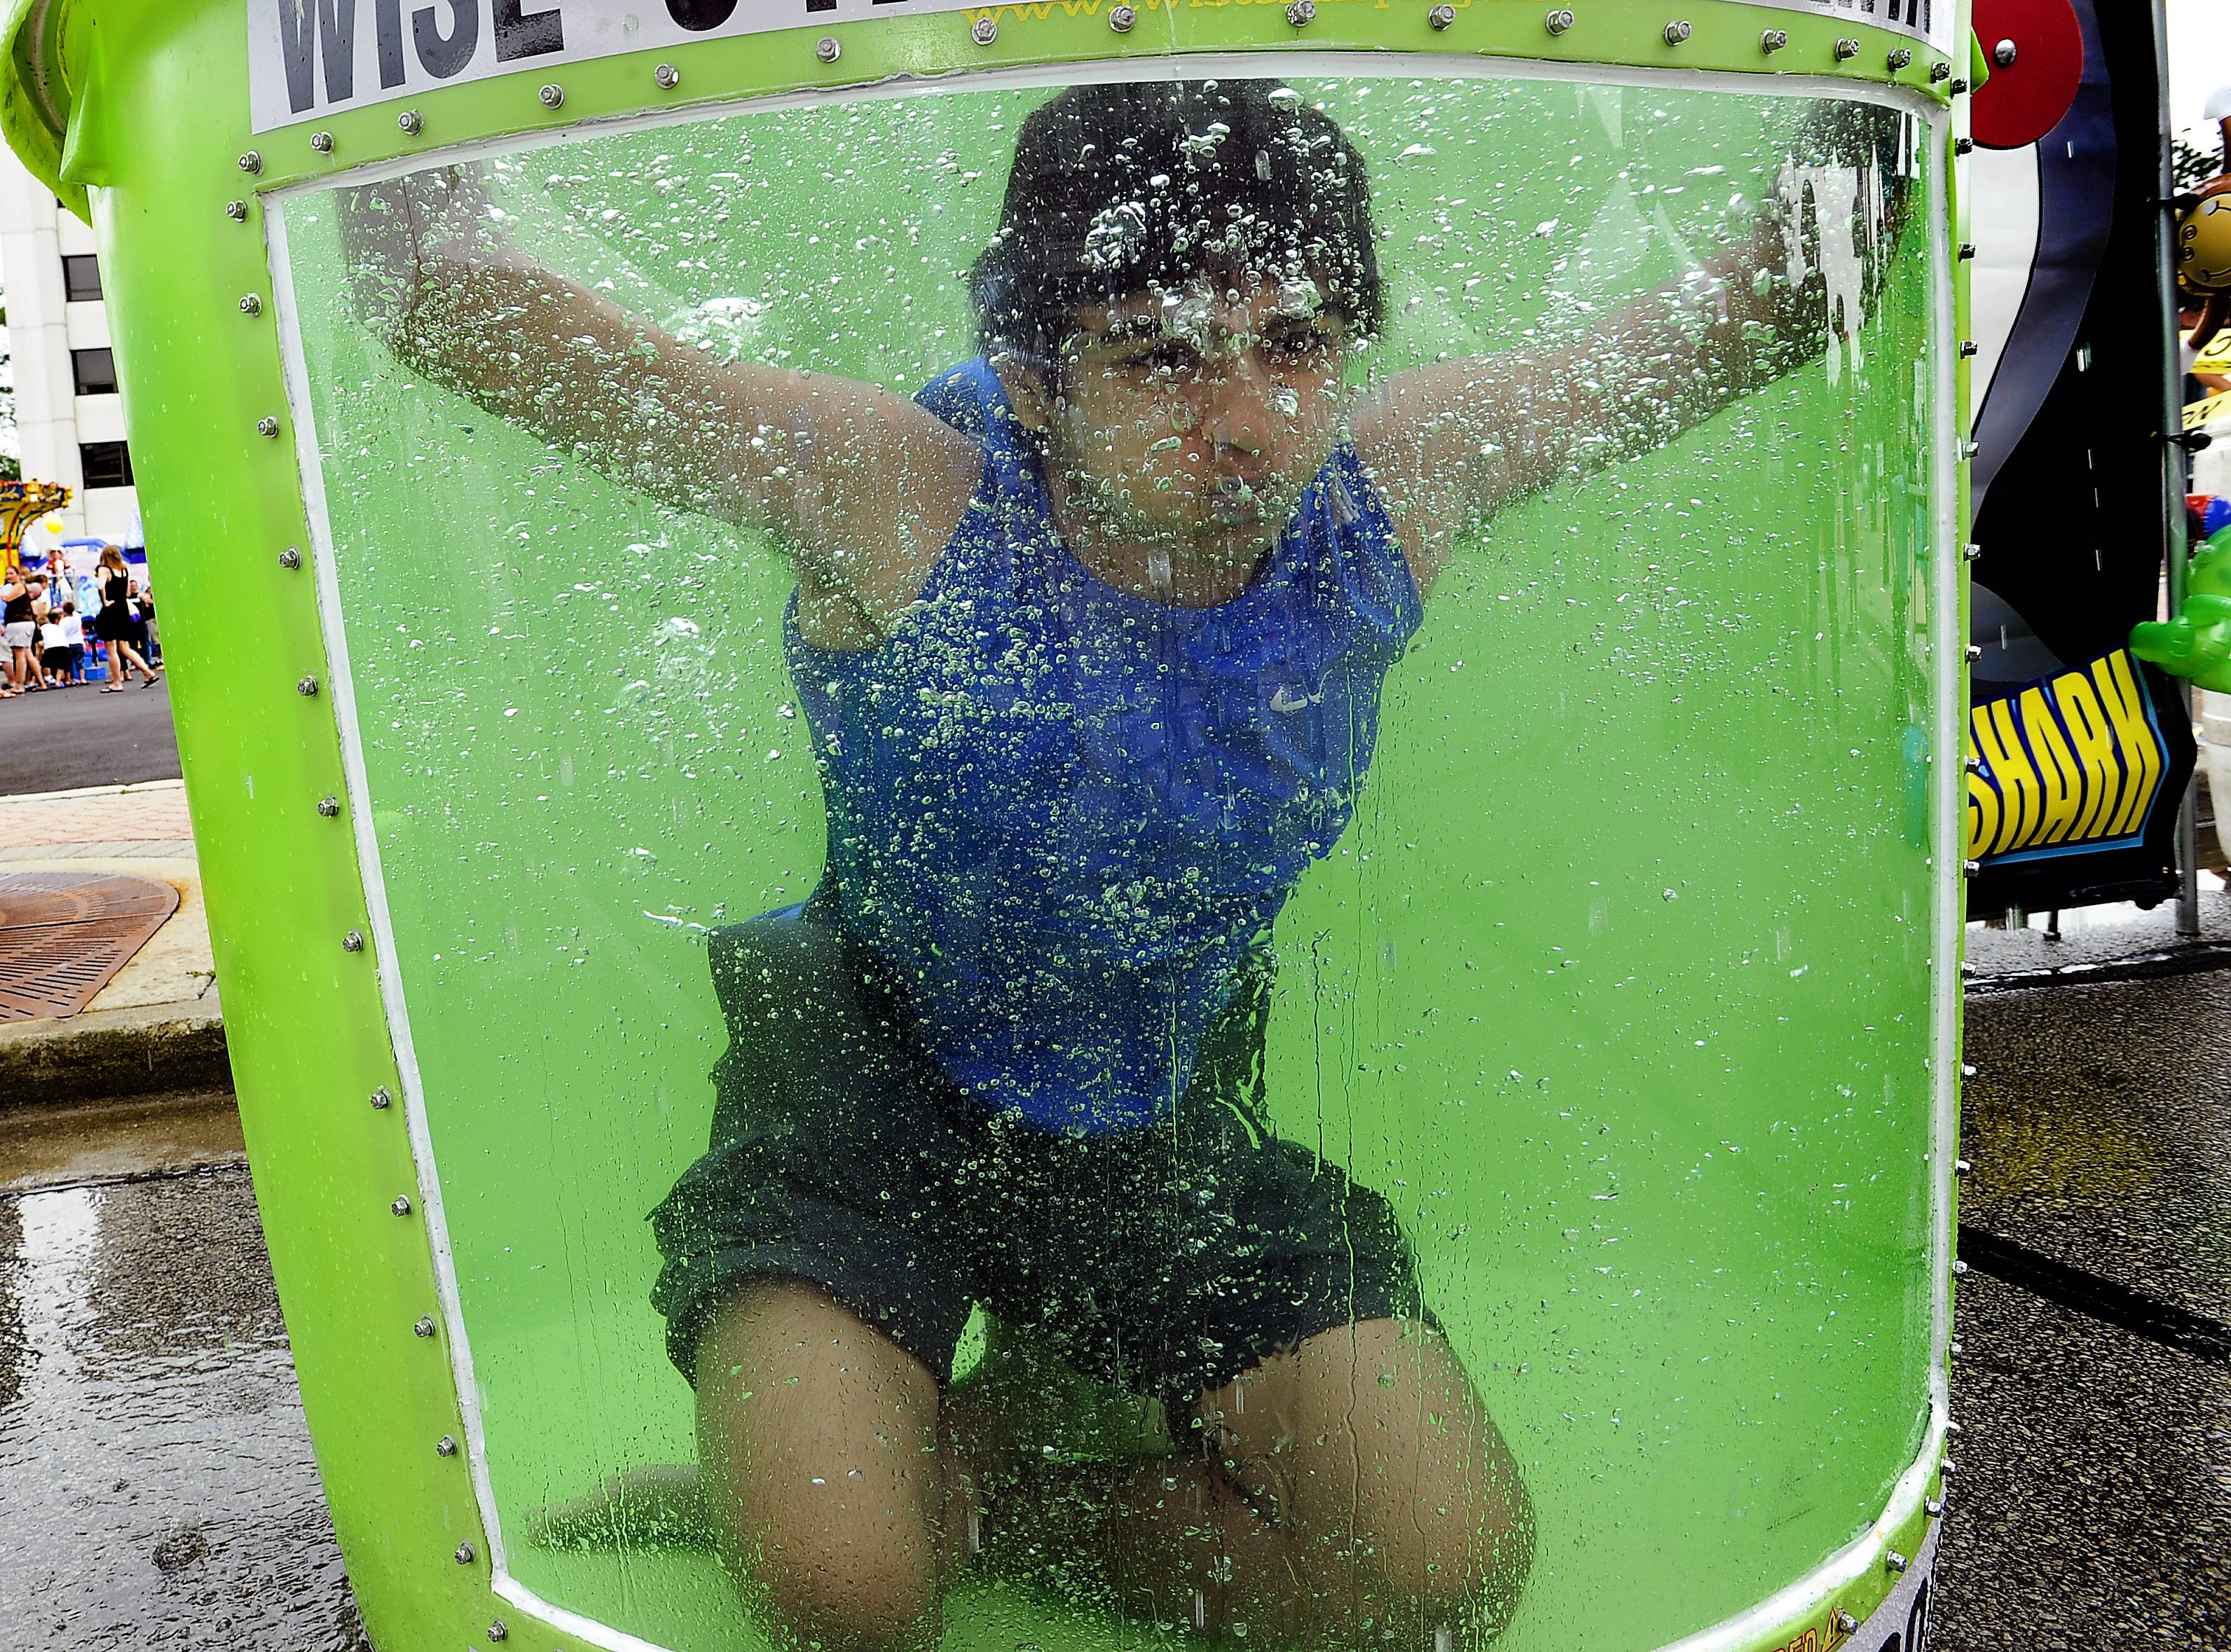 Shivam Patel, 16, of Des Plaines had the best job on a hot summer day, manning the dunk tank Saturday at the 15th annual Mount Prospect Downtown Block Party. He took a break after a series of kids with major-league arms continued to make his life more on the wet side than dry side.